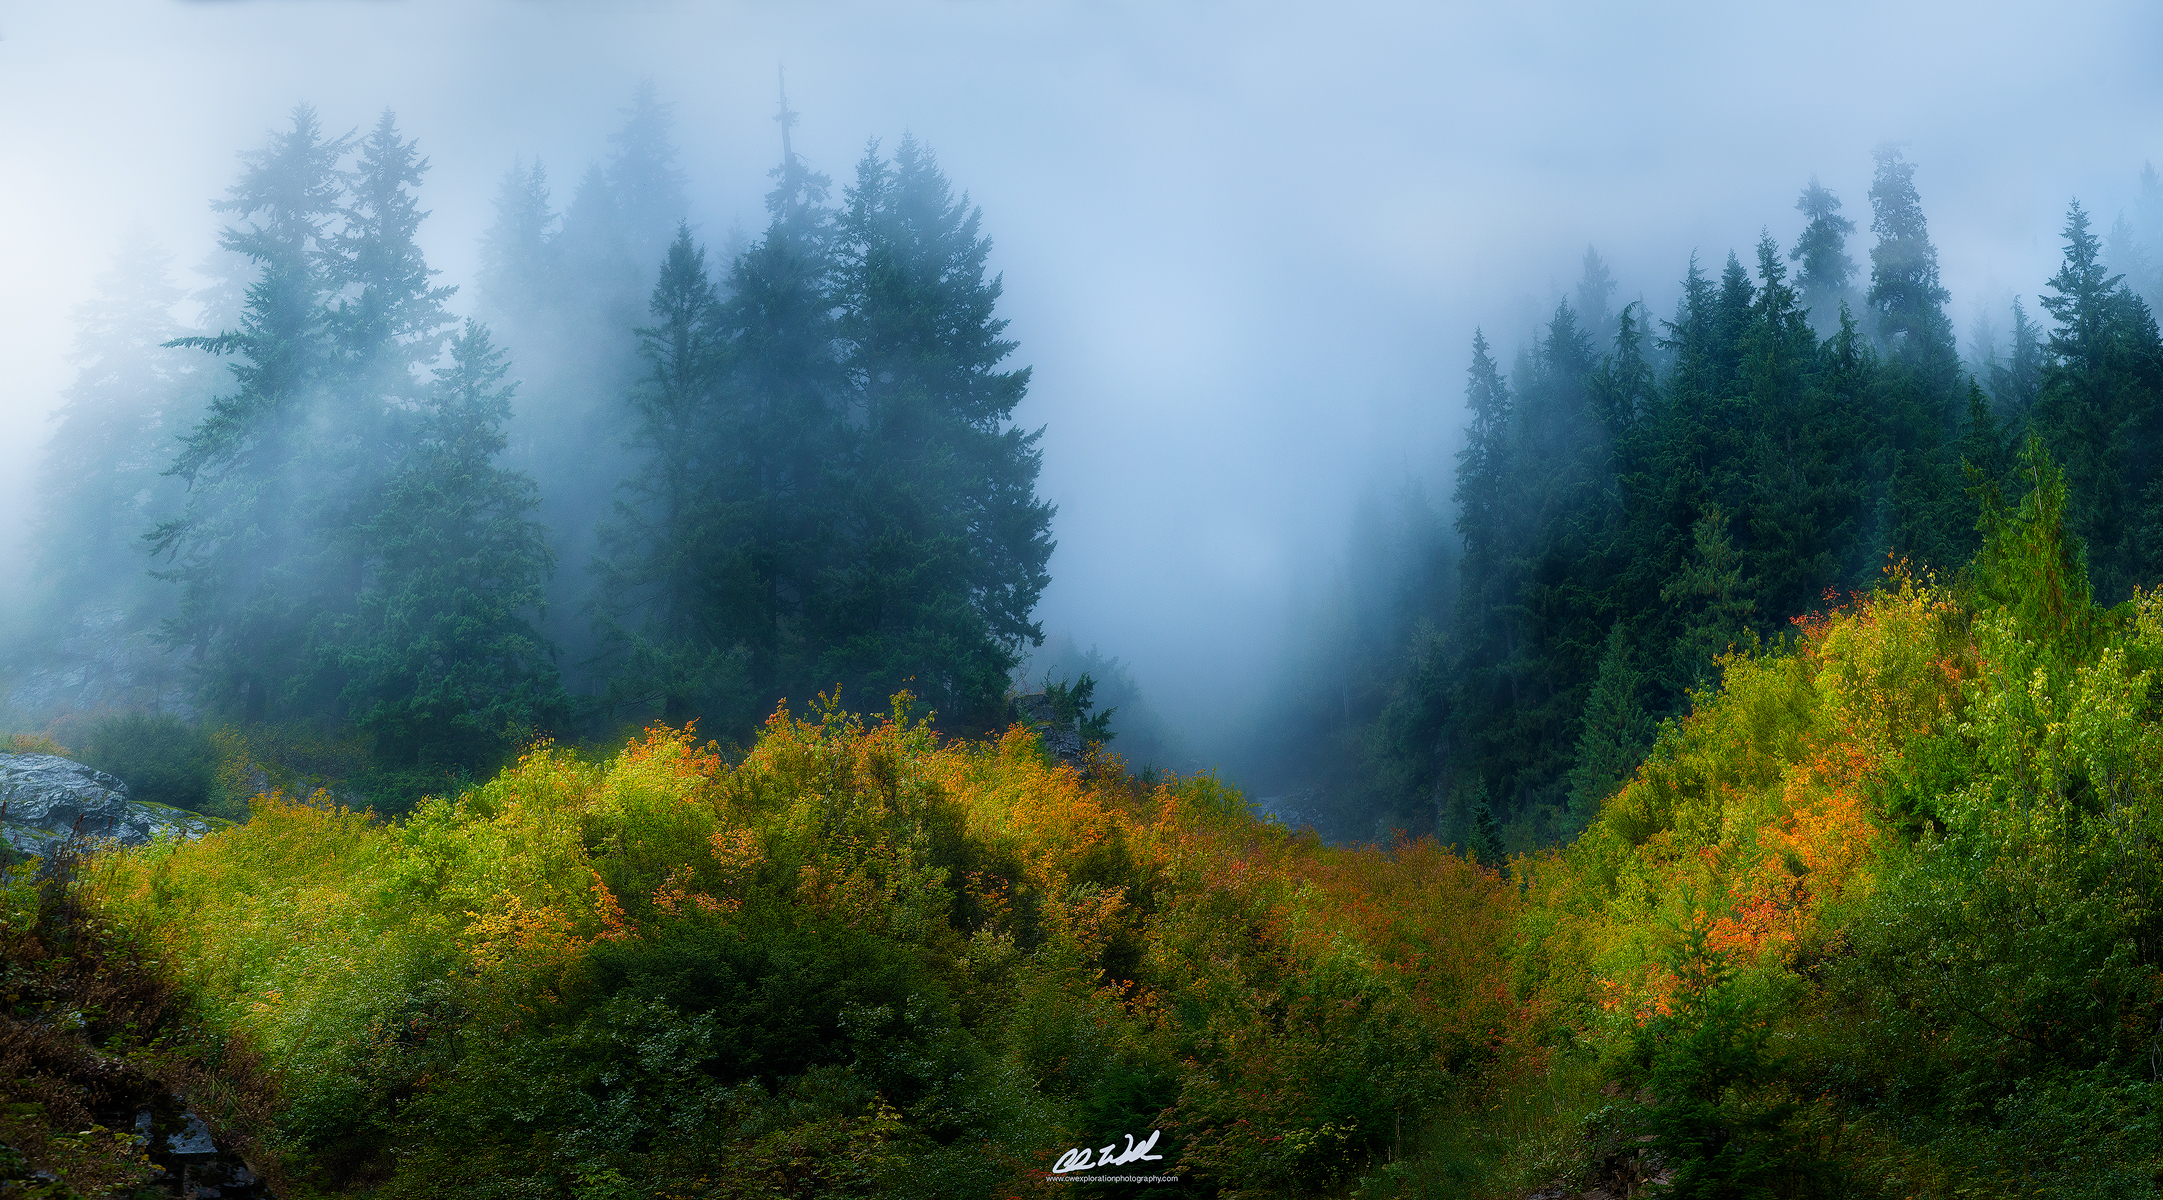 Wallpaper Sunrise At Fall Through The Mists Intimate Forest Scenes